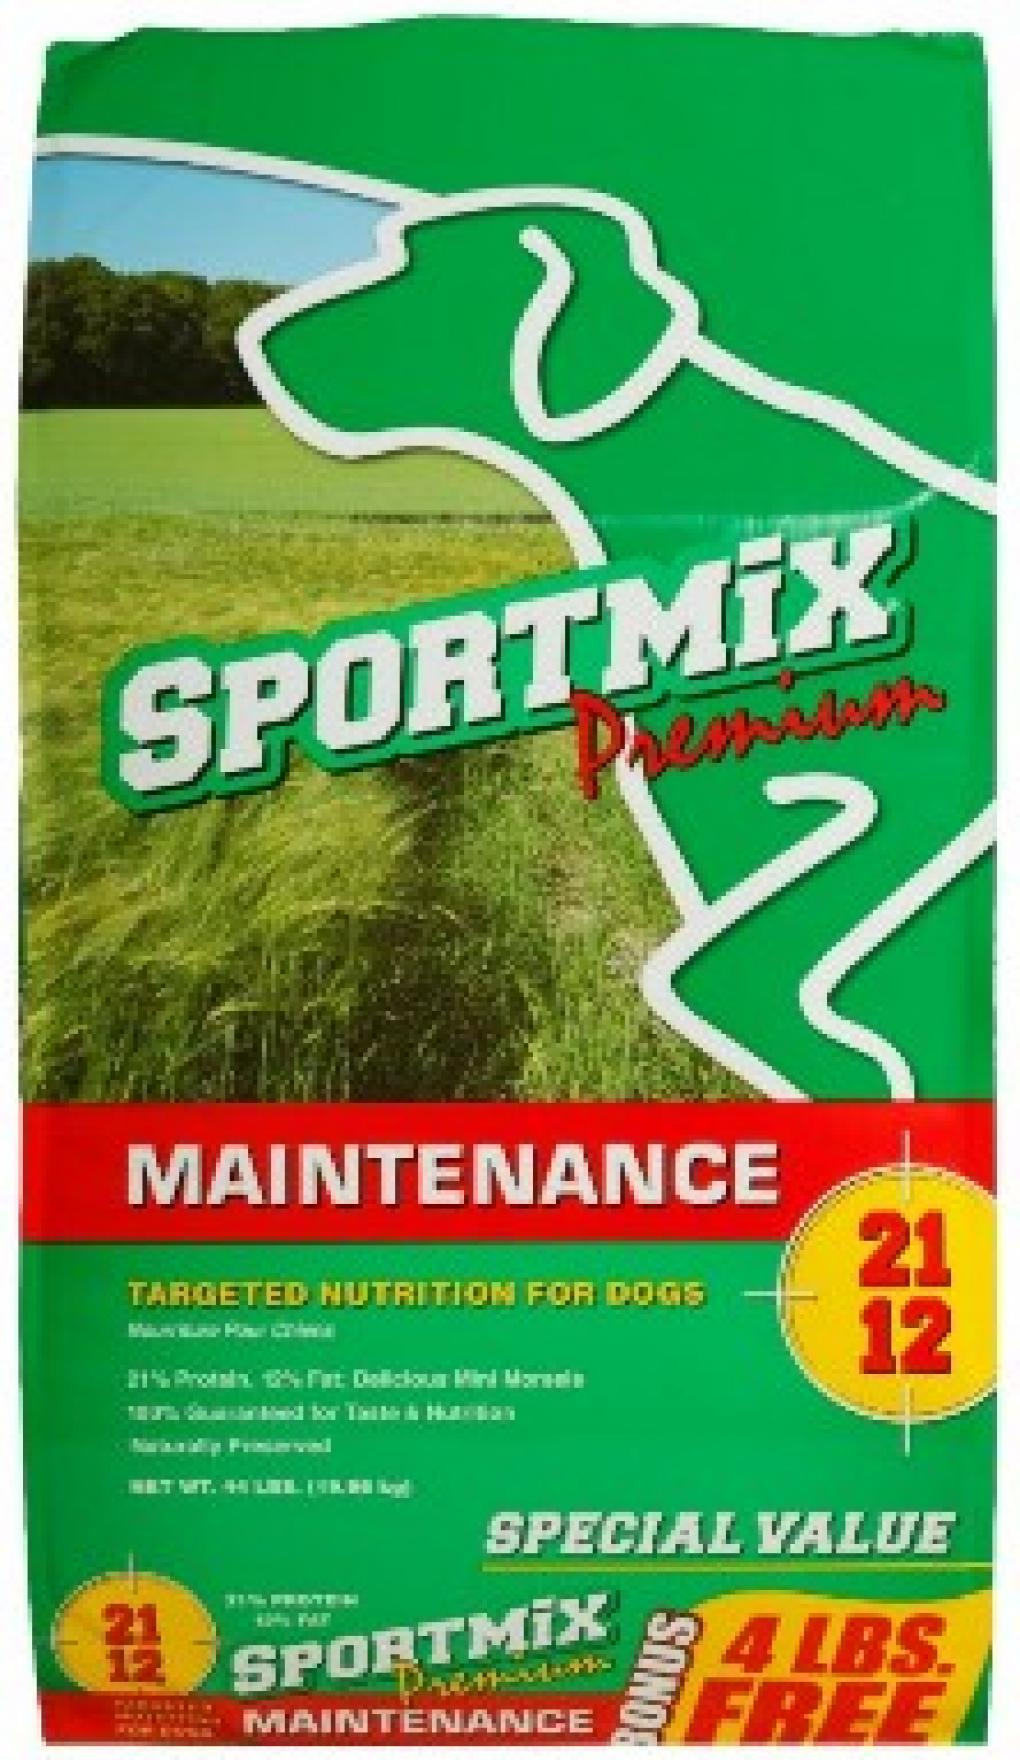 Sportmix Premium Maintenance Dog Food label